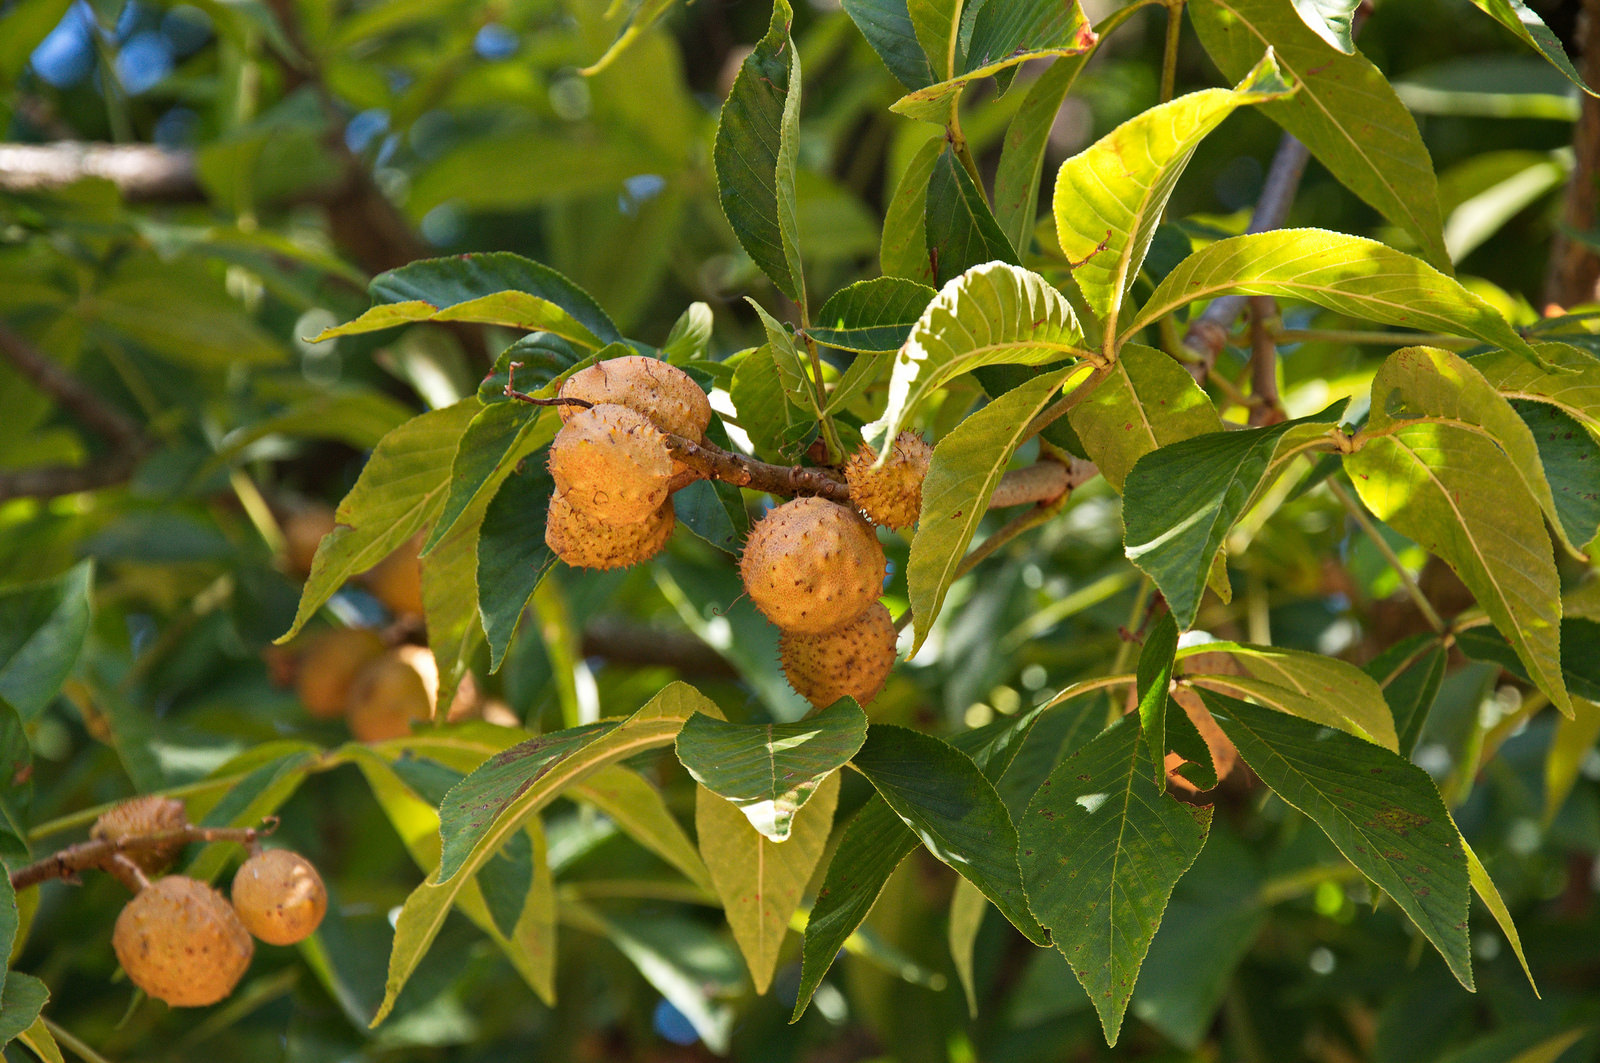 The fruits of <i>Aesculus glabra</i>